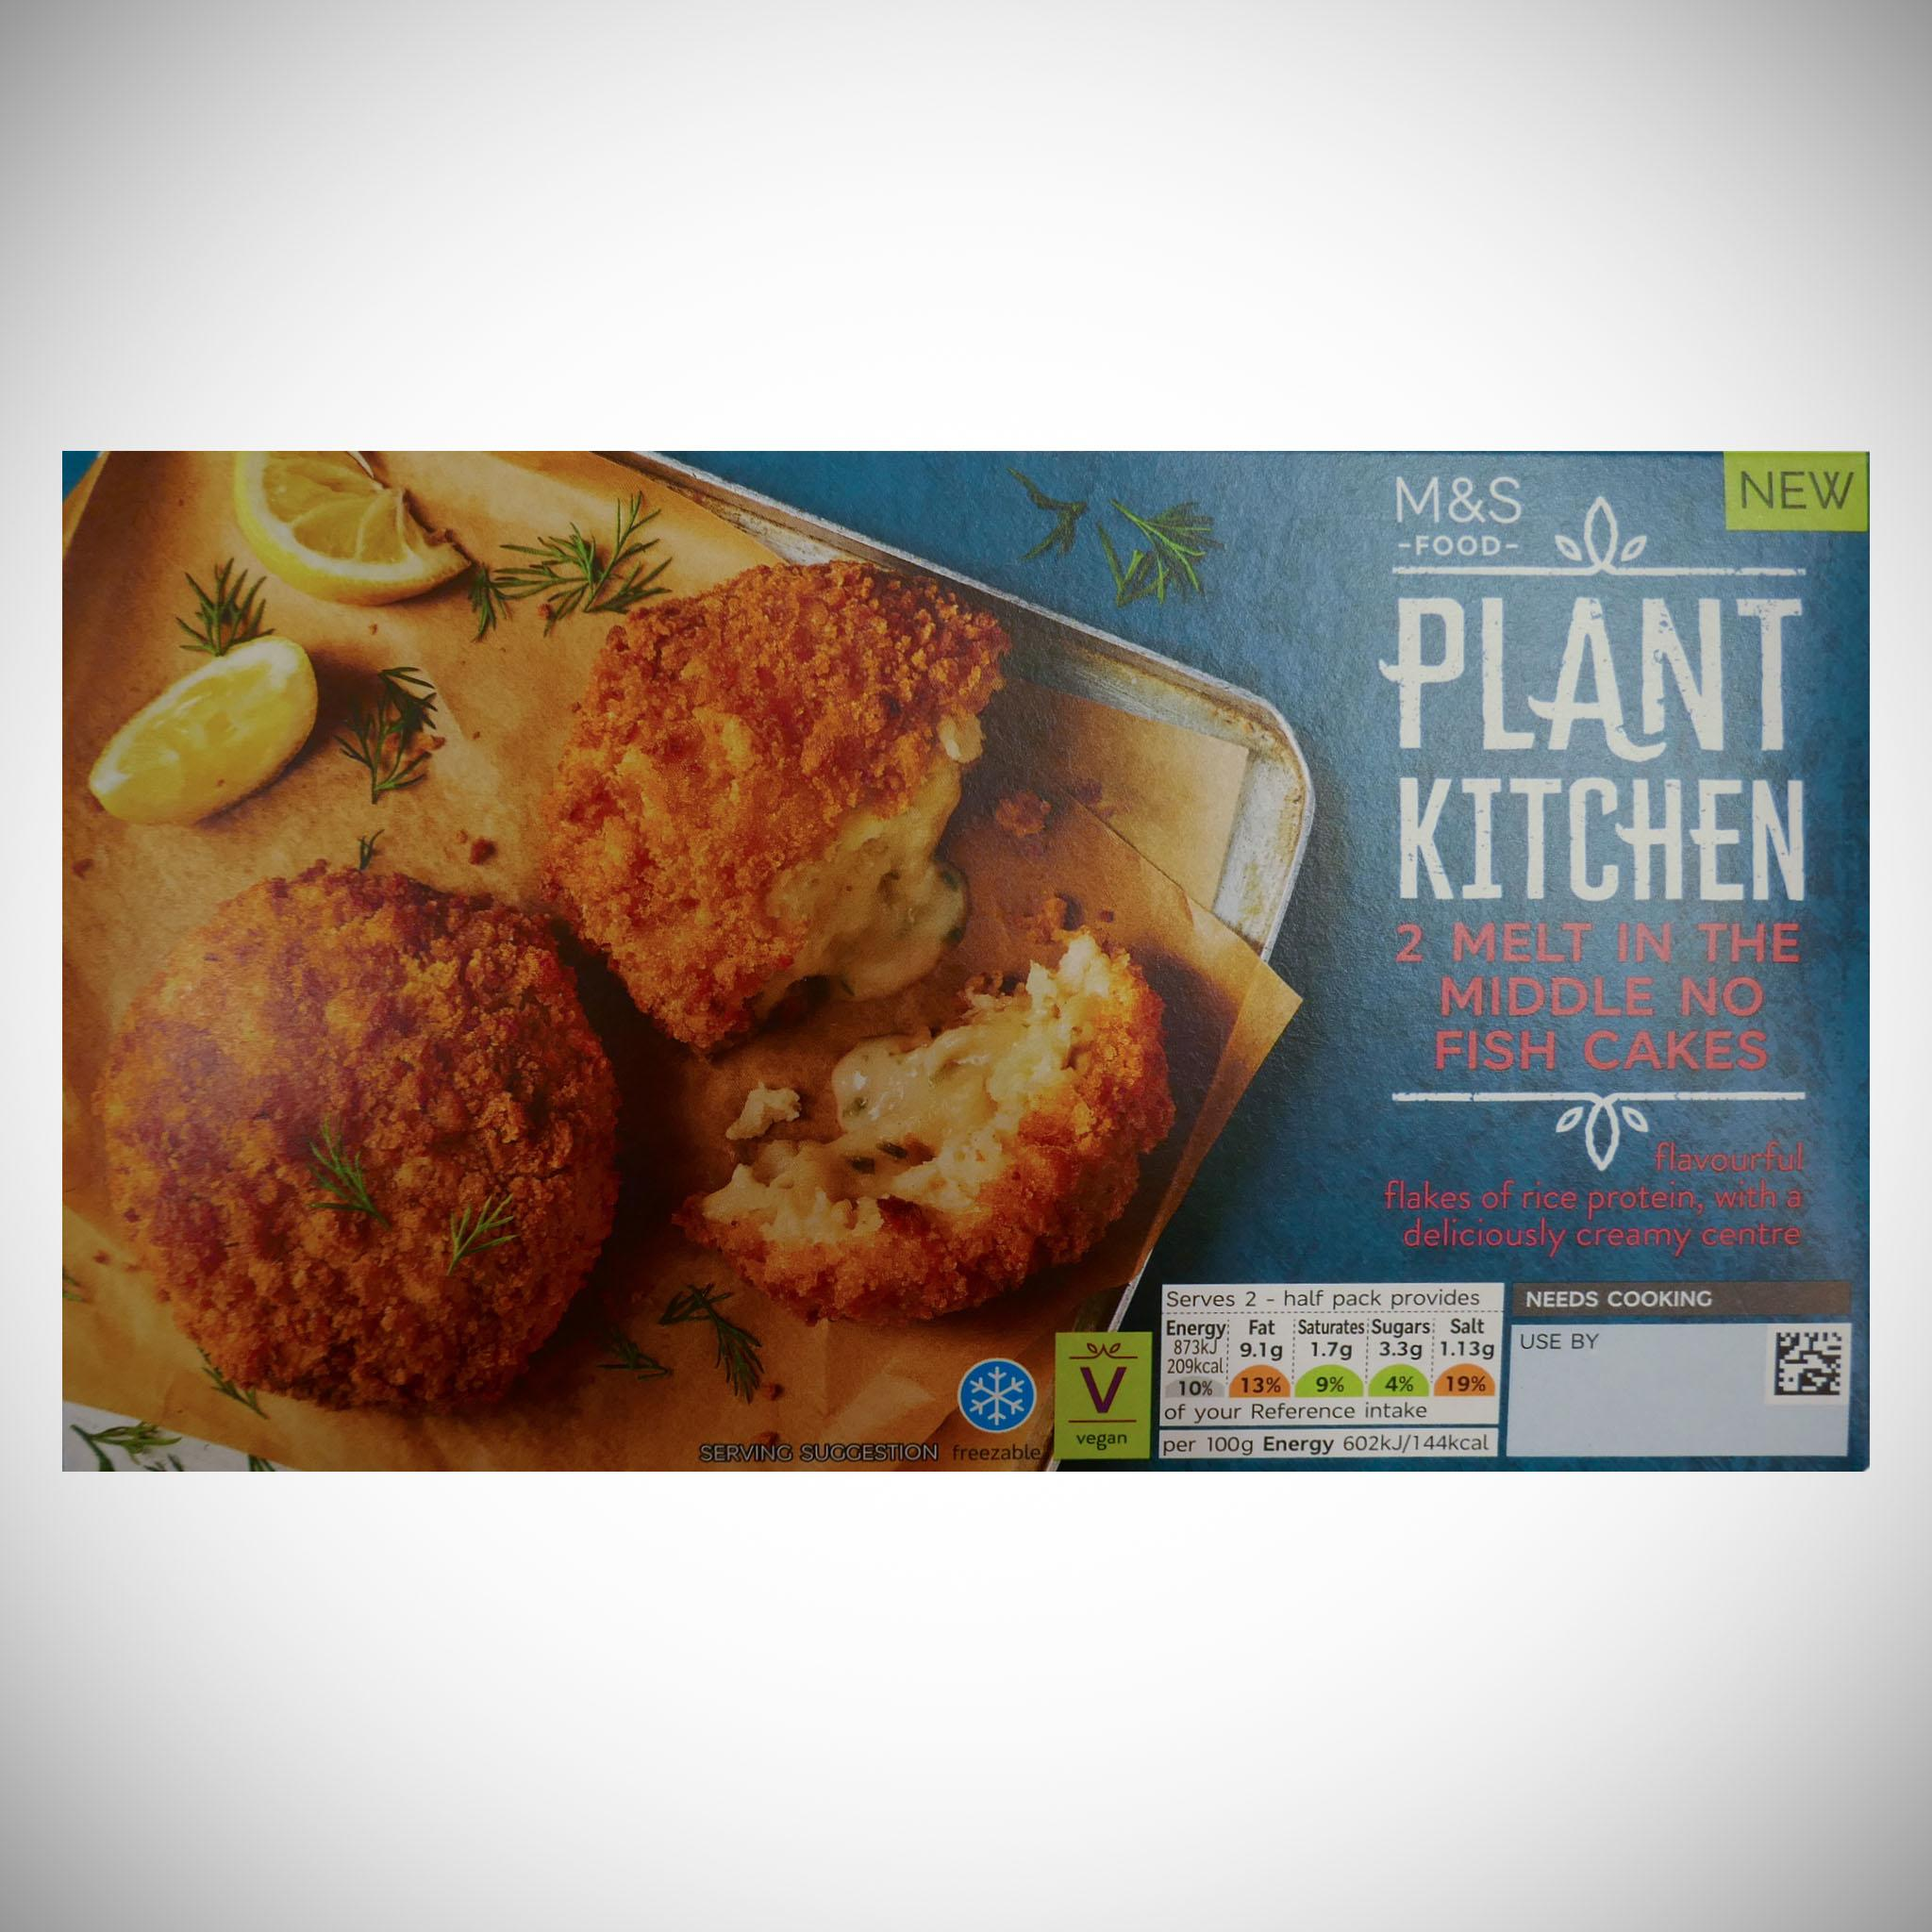 Plant Kitchen 2 Melt in the Middle No Fish Cakes 290g